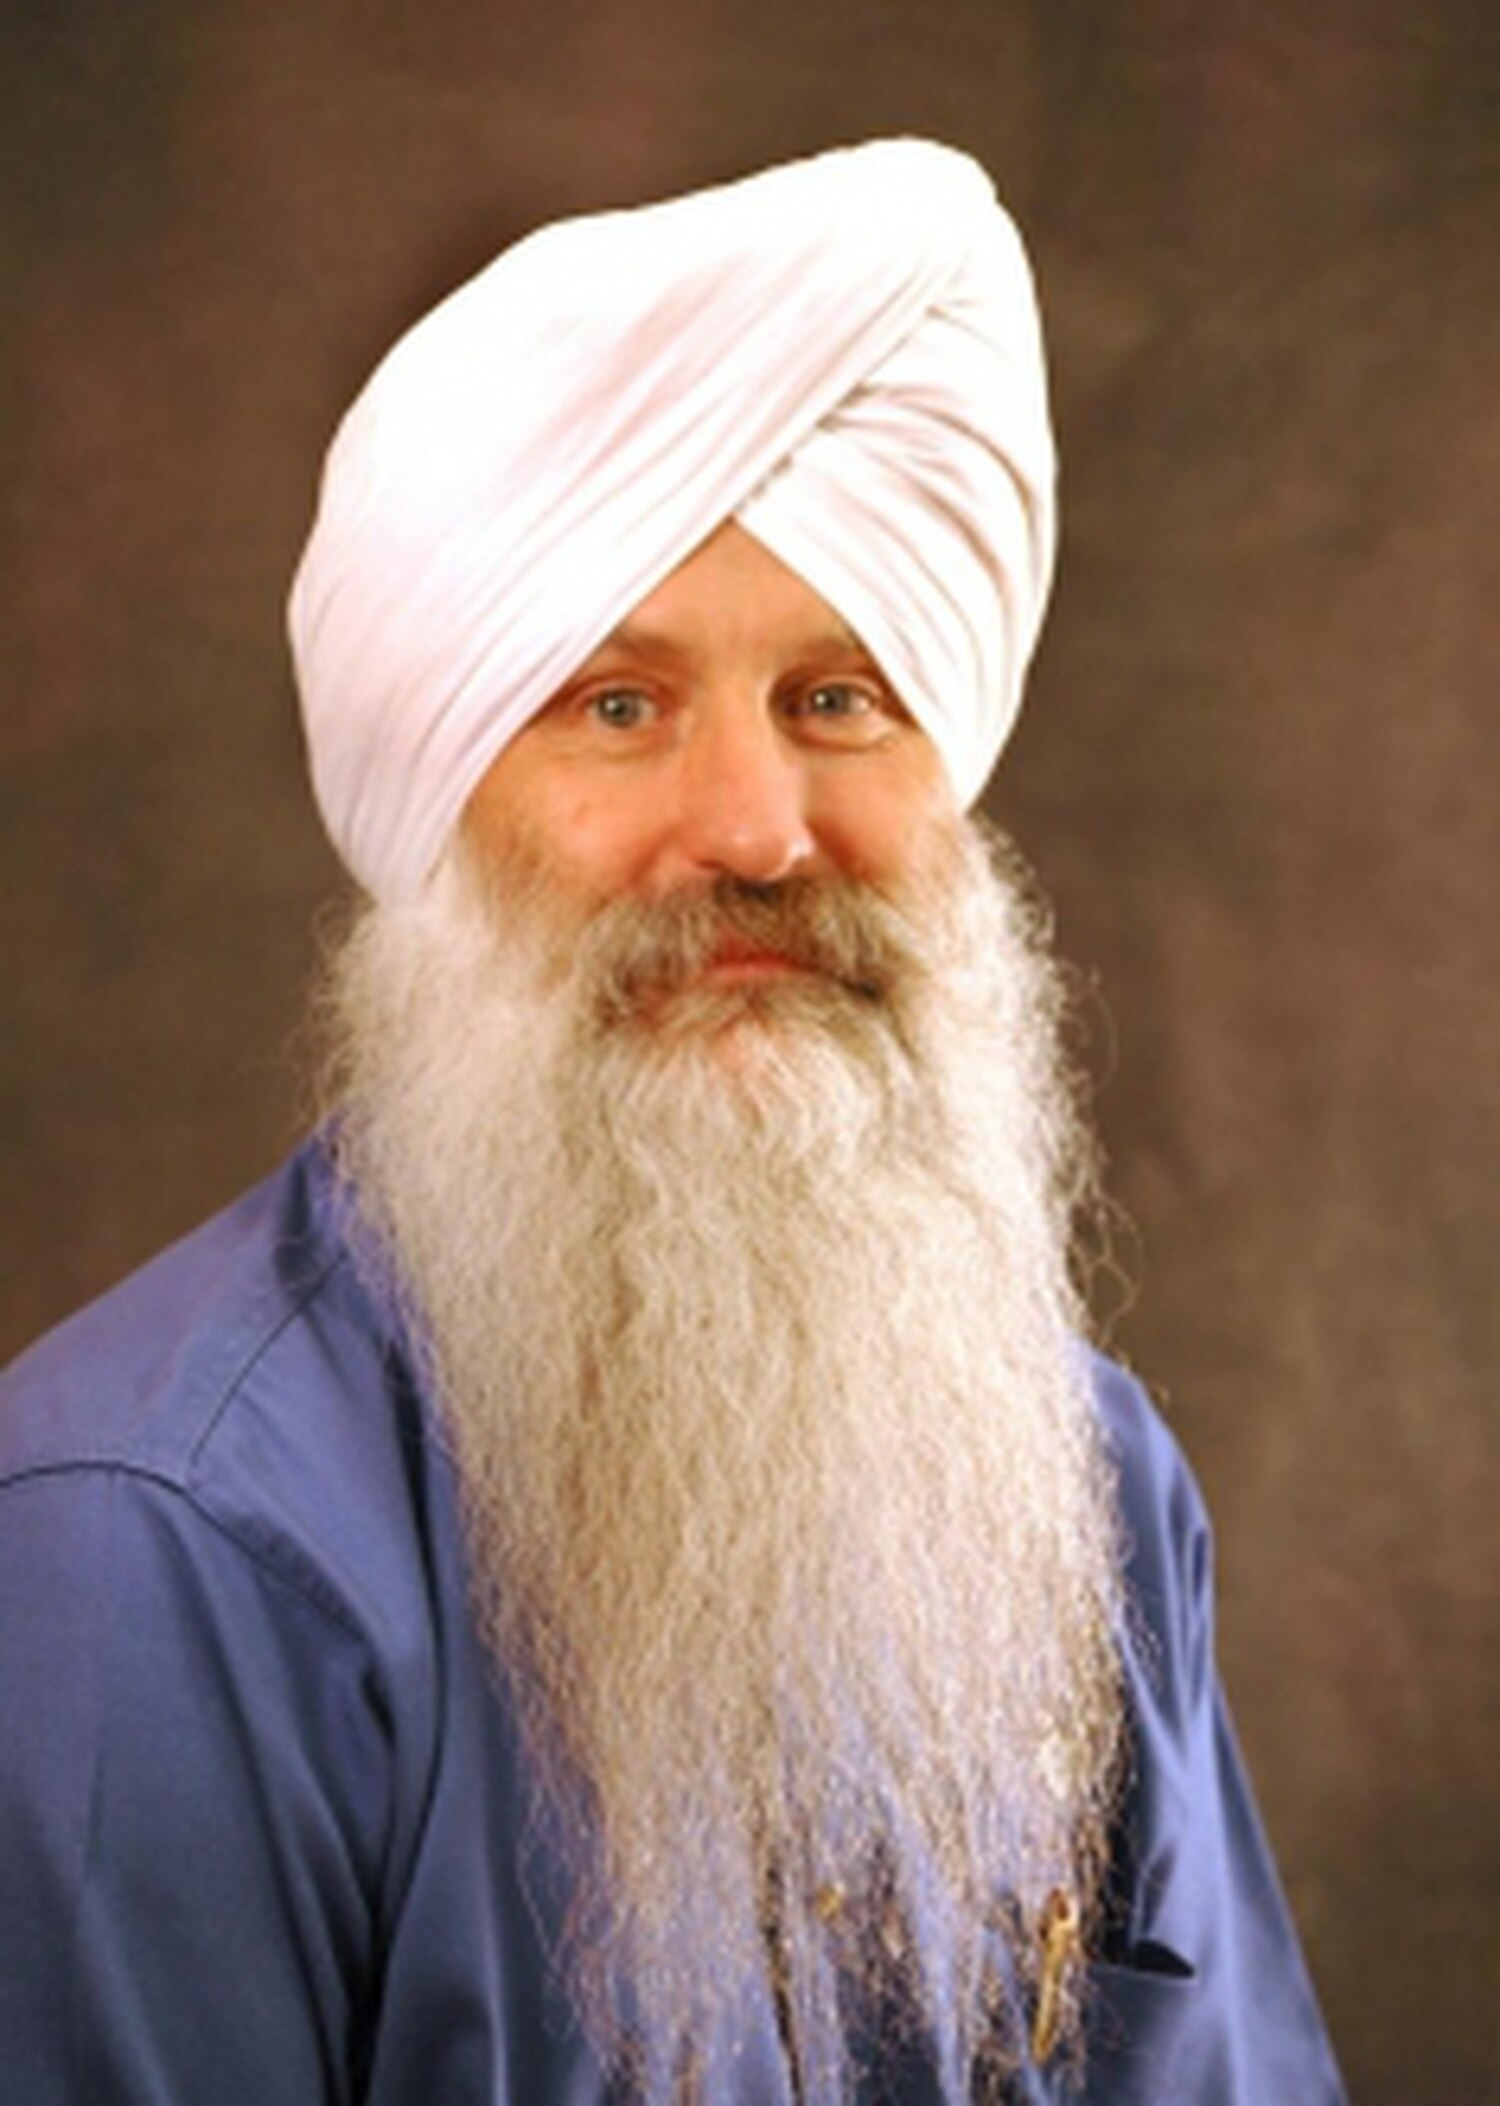 Akal co-founder Gurutej Singh Khalsa is a plaintiff in the lawsuit, but declined to speak for this article.